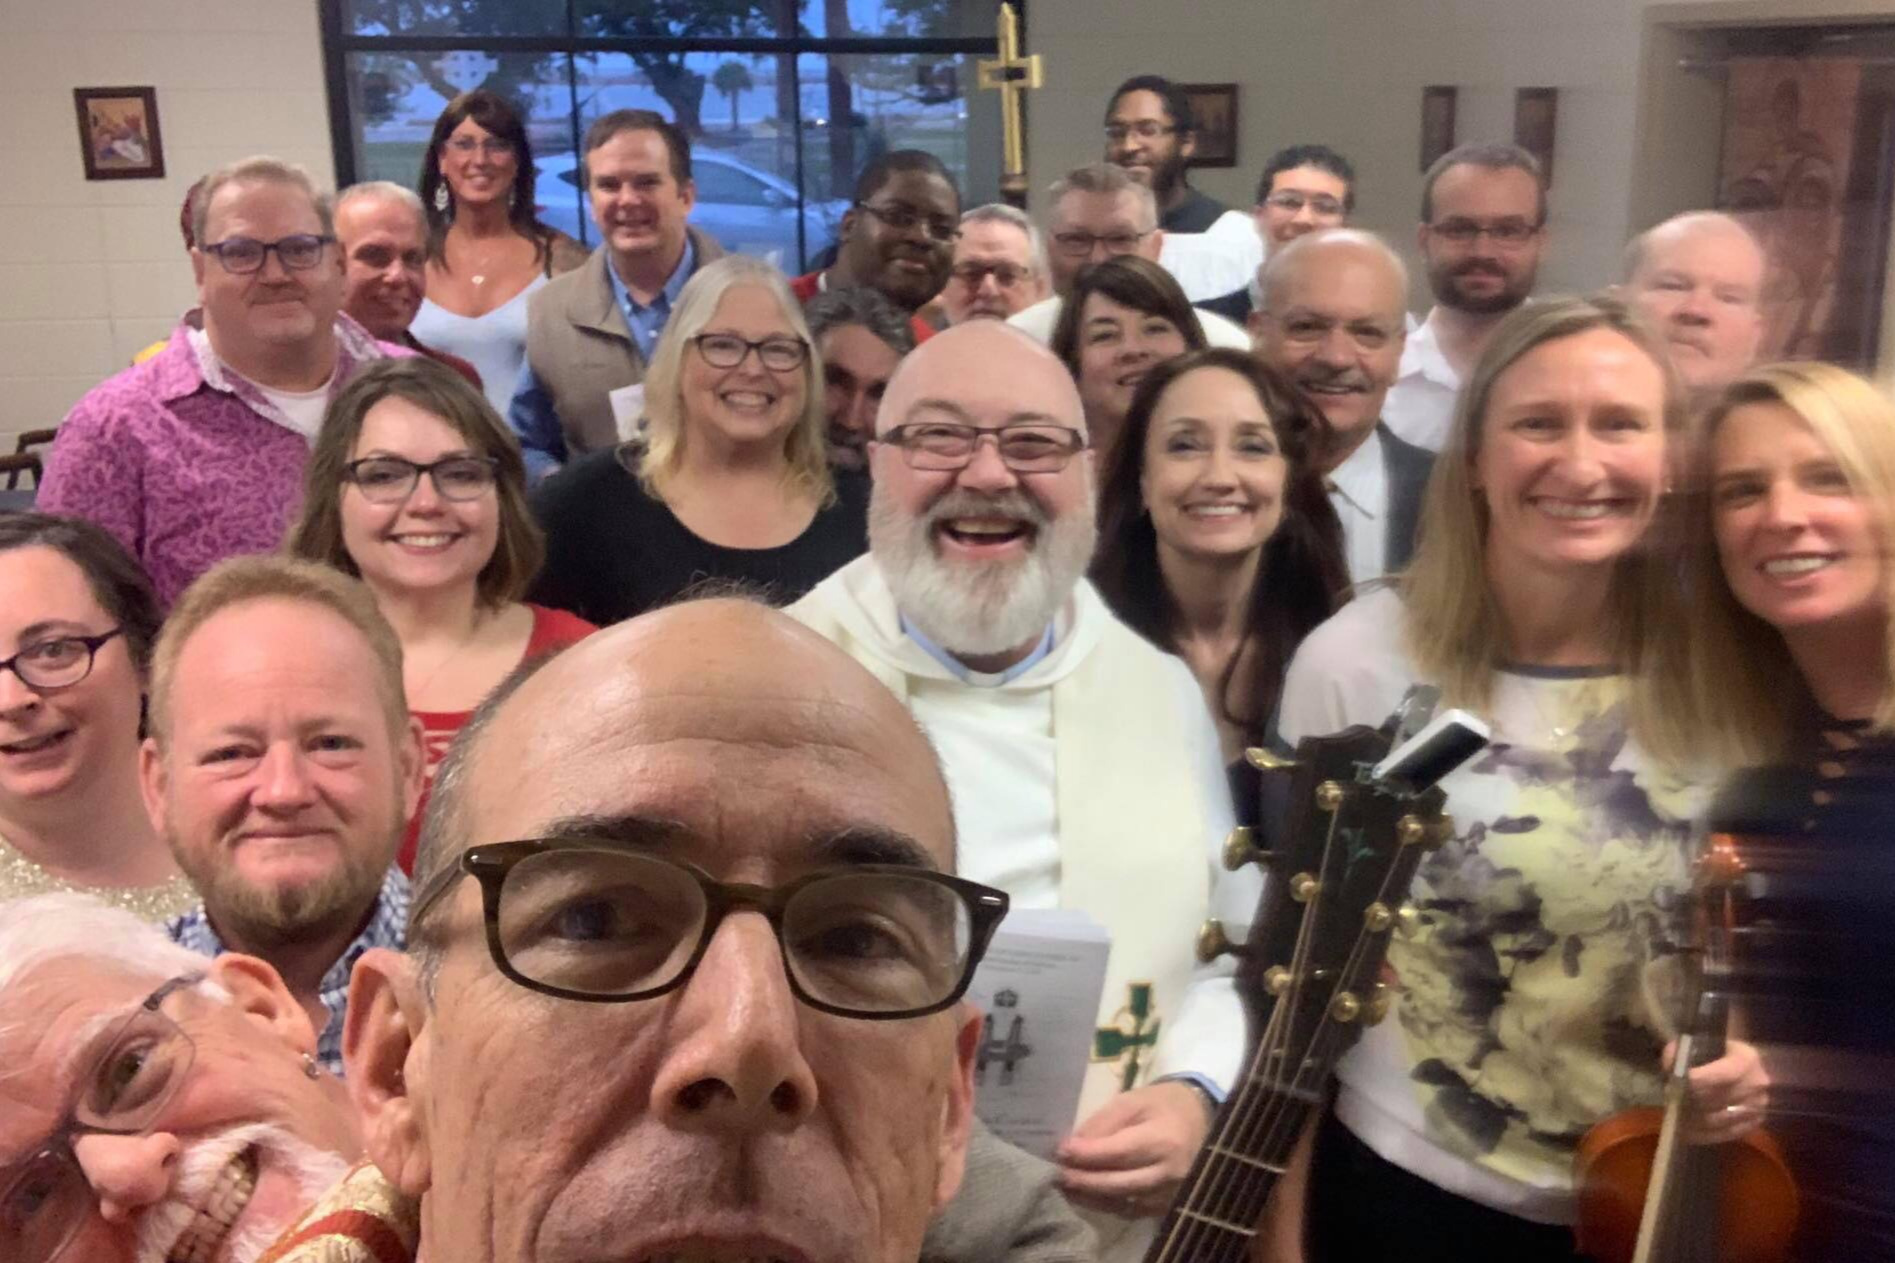 The Rt Rev Brian R. Seage, Bishop of Mississippi, takes a group selfie during his episcopal visitation to Lighthouse-St. Nicholas, 9 December 2018.